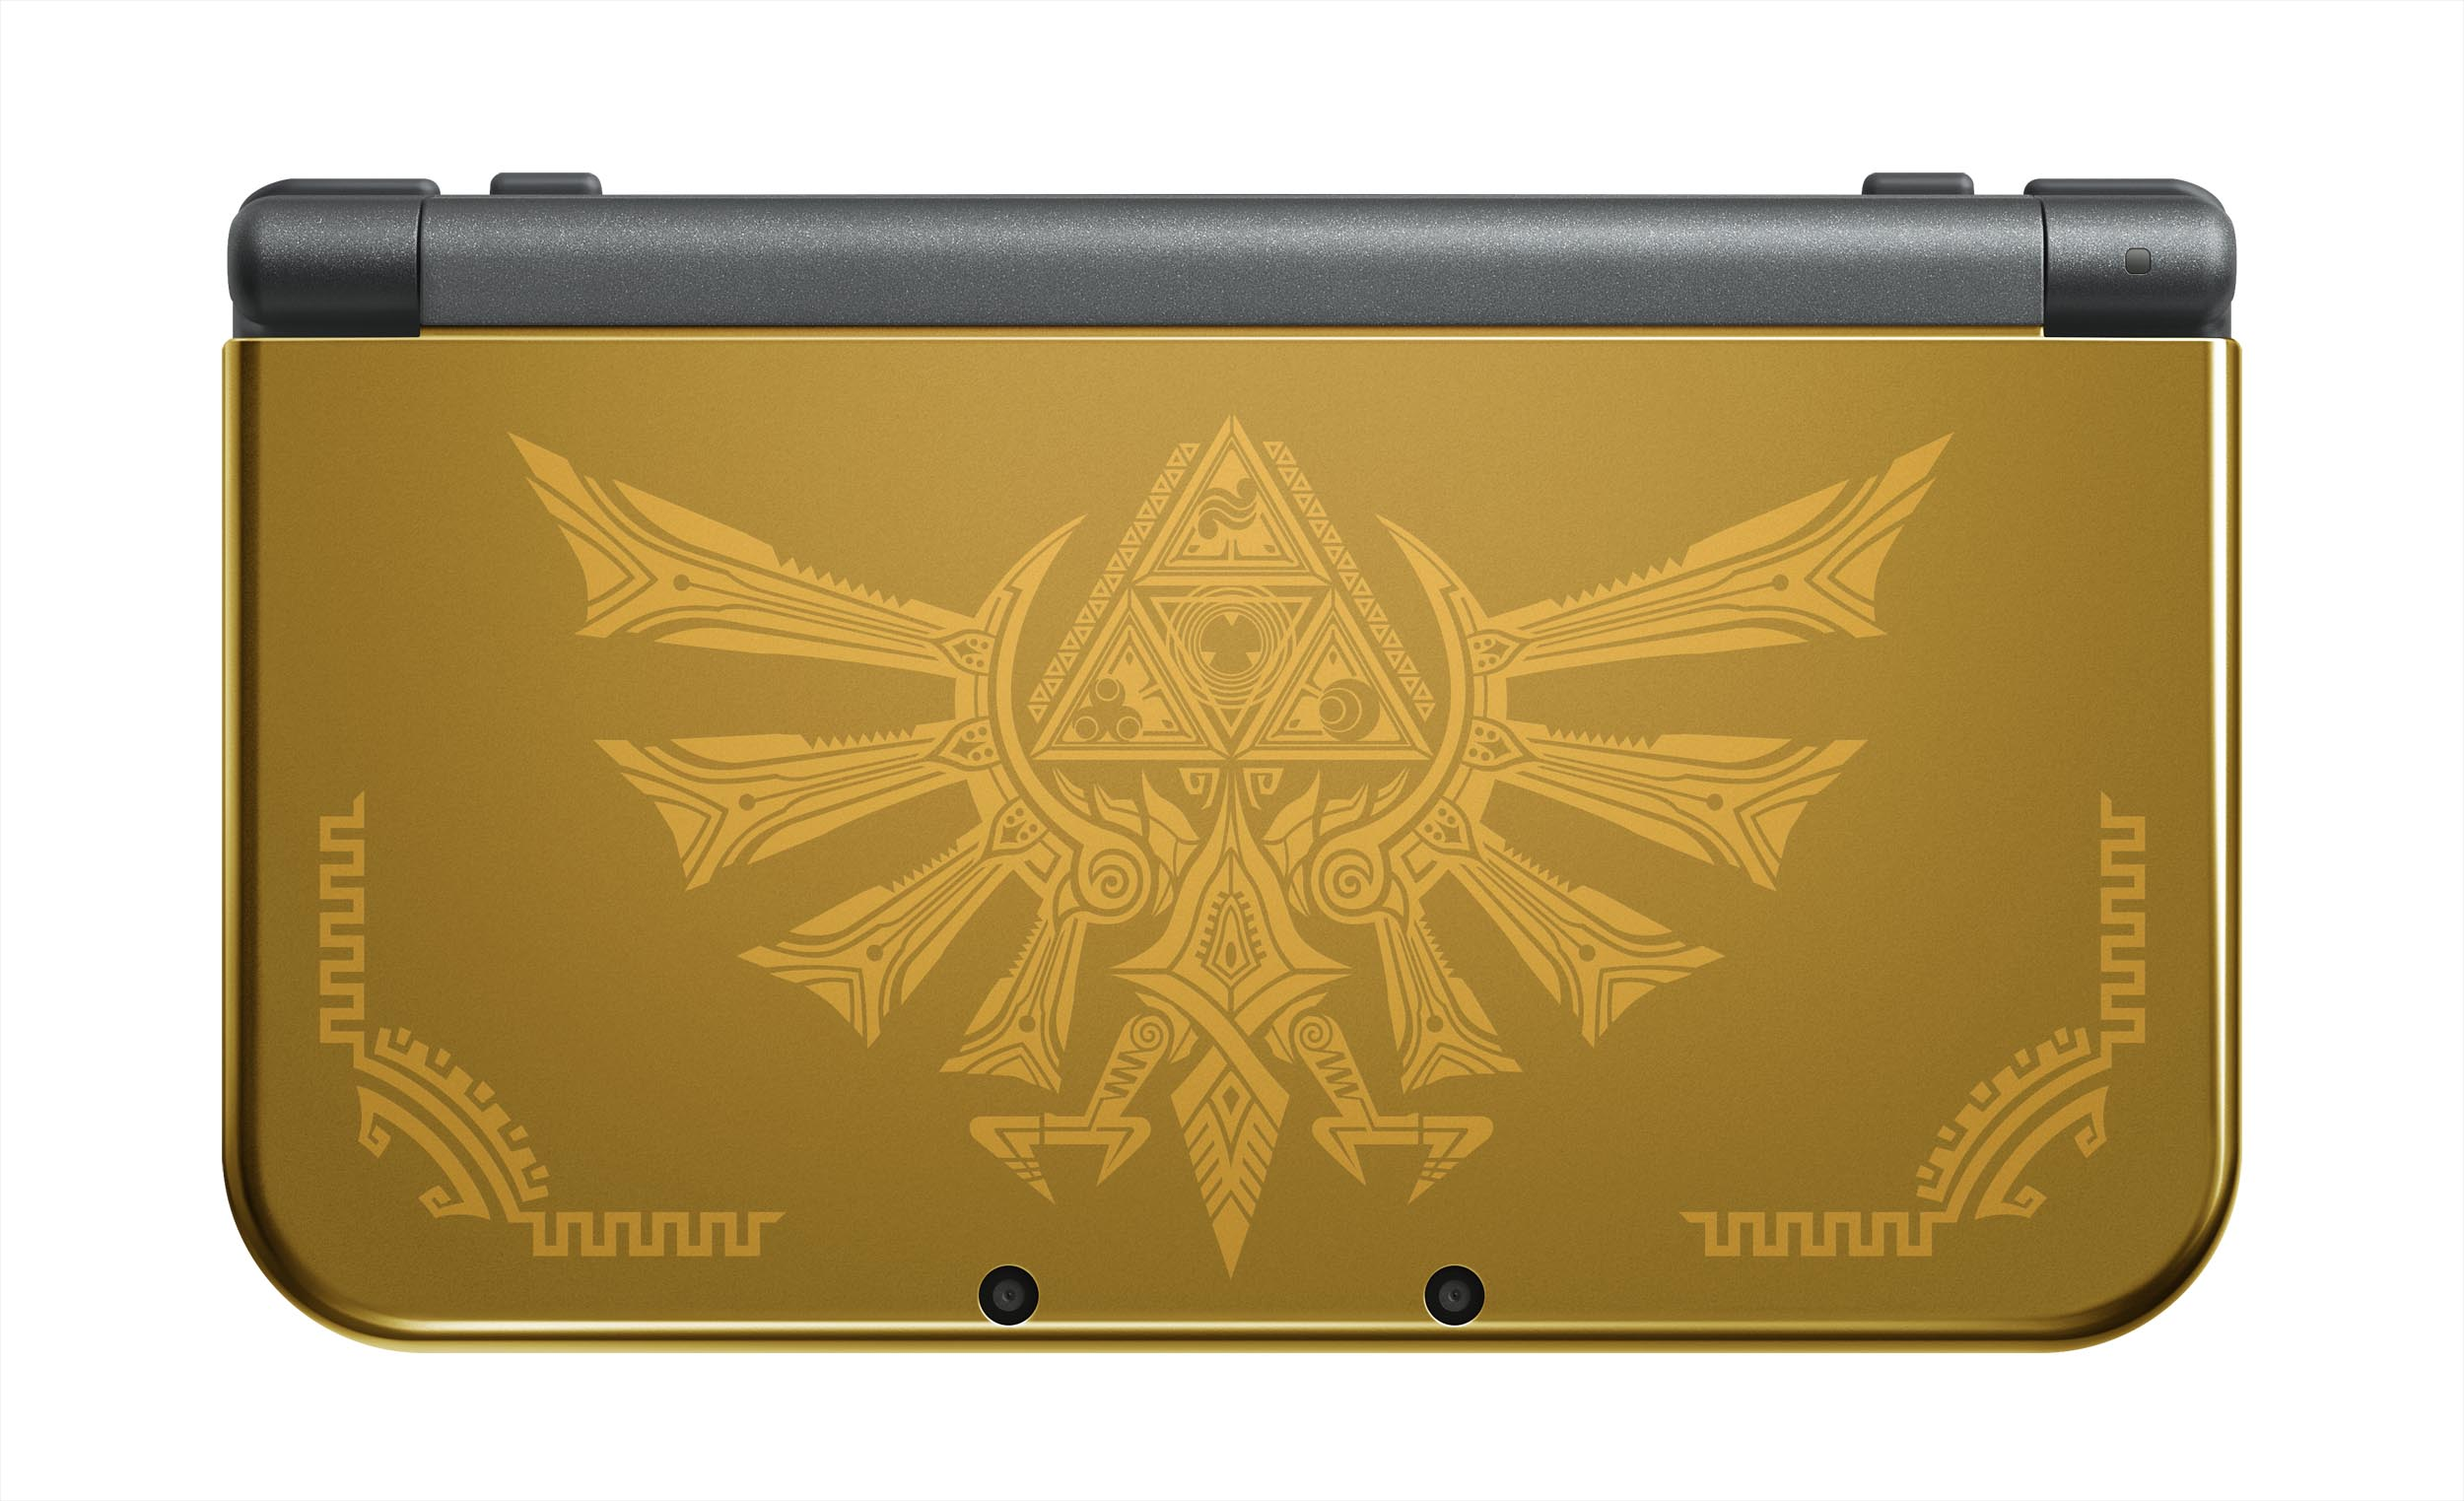 New Nintendo 3DS Hyrule Edition